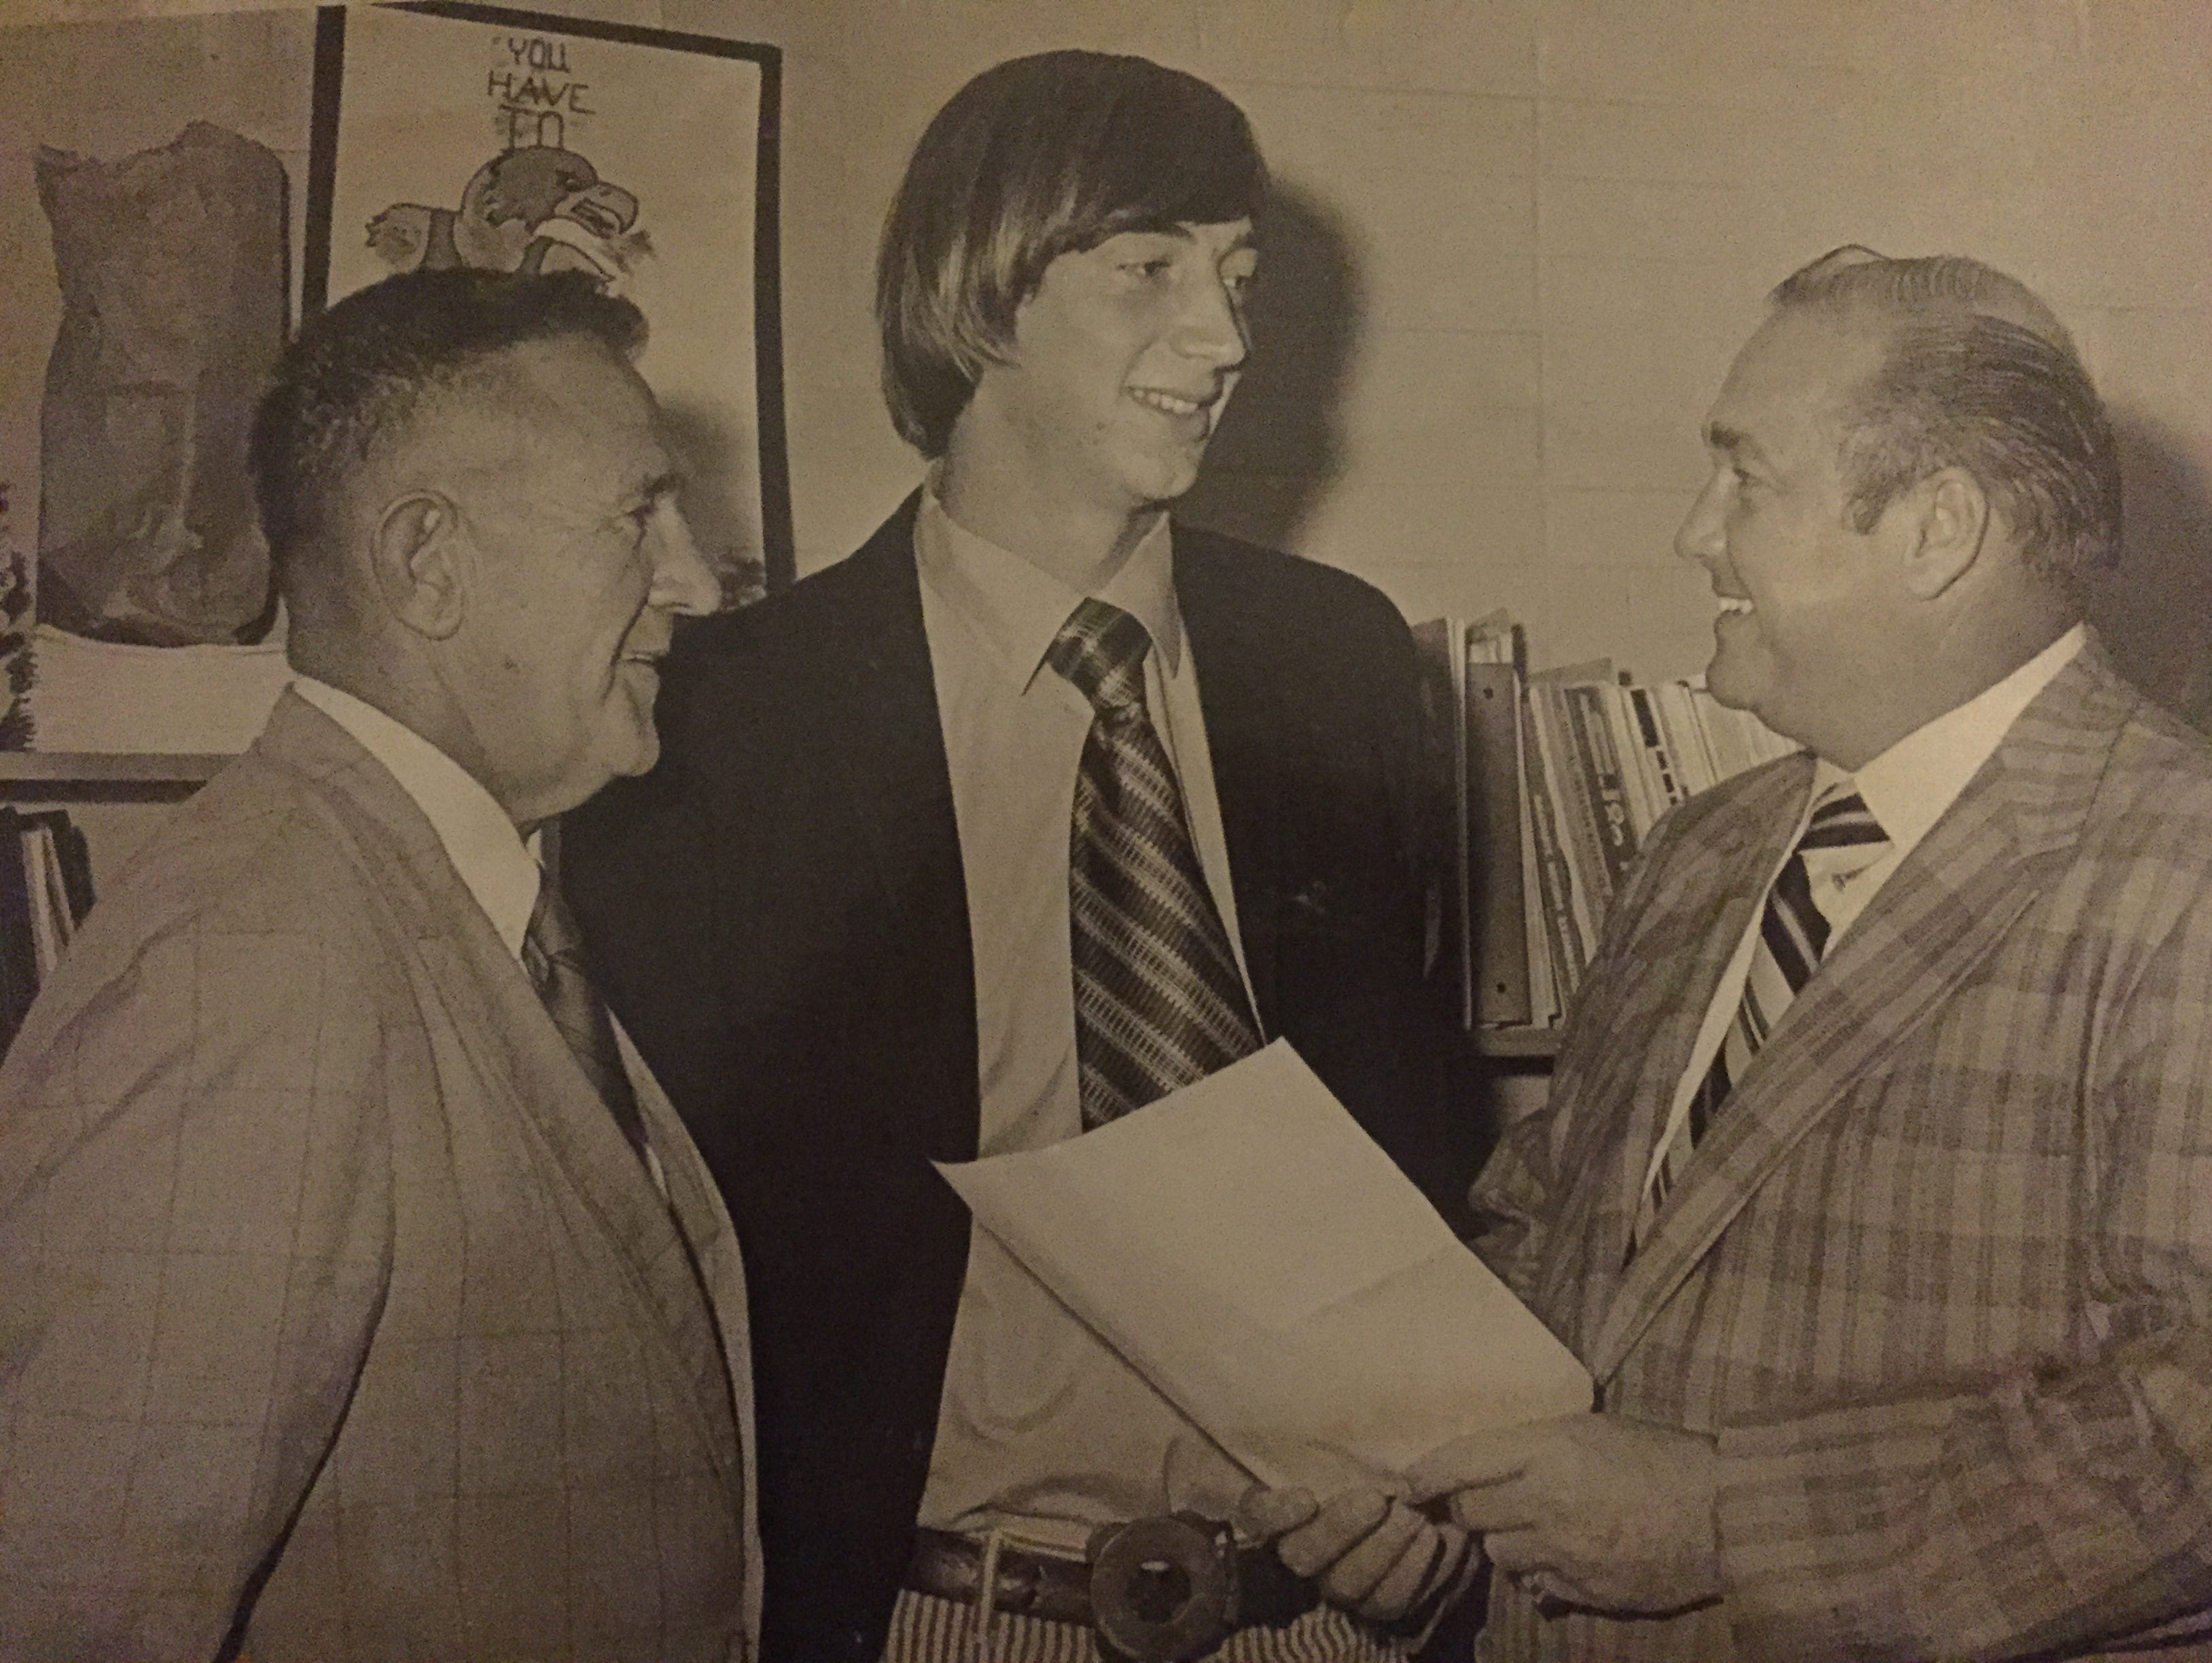 Central quarterback Robbie Keyes (center) receives the WJLK Player of the Week award in 1971, flanked by head coach Joe Boyd (left) and Pau Larson (right), owner of Larson Ford in Lakewood, the sponsor of the award.